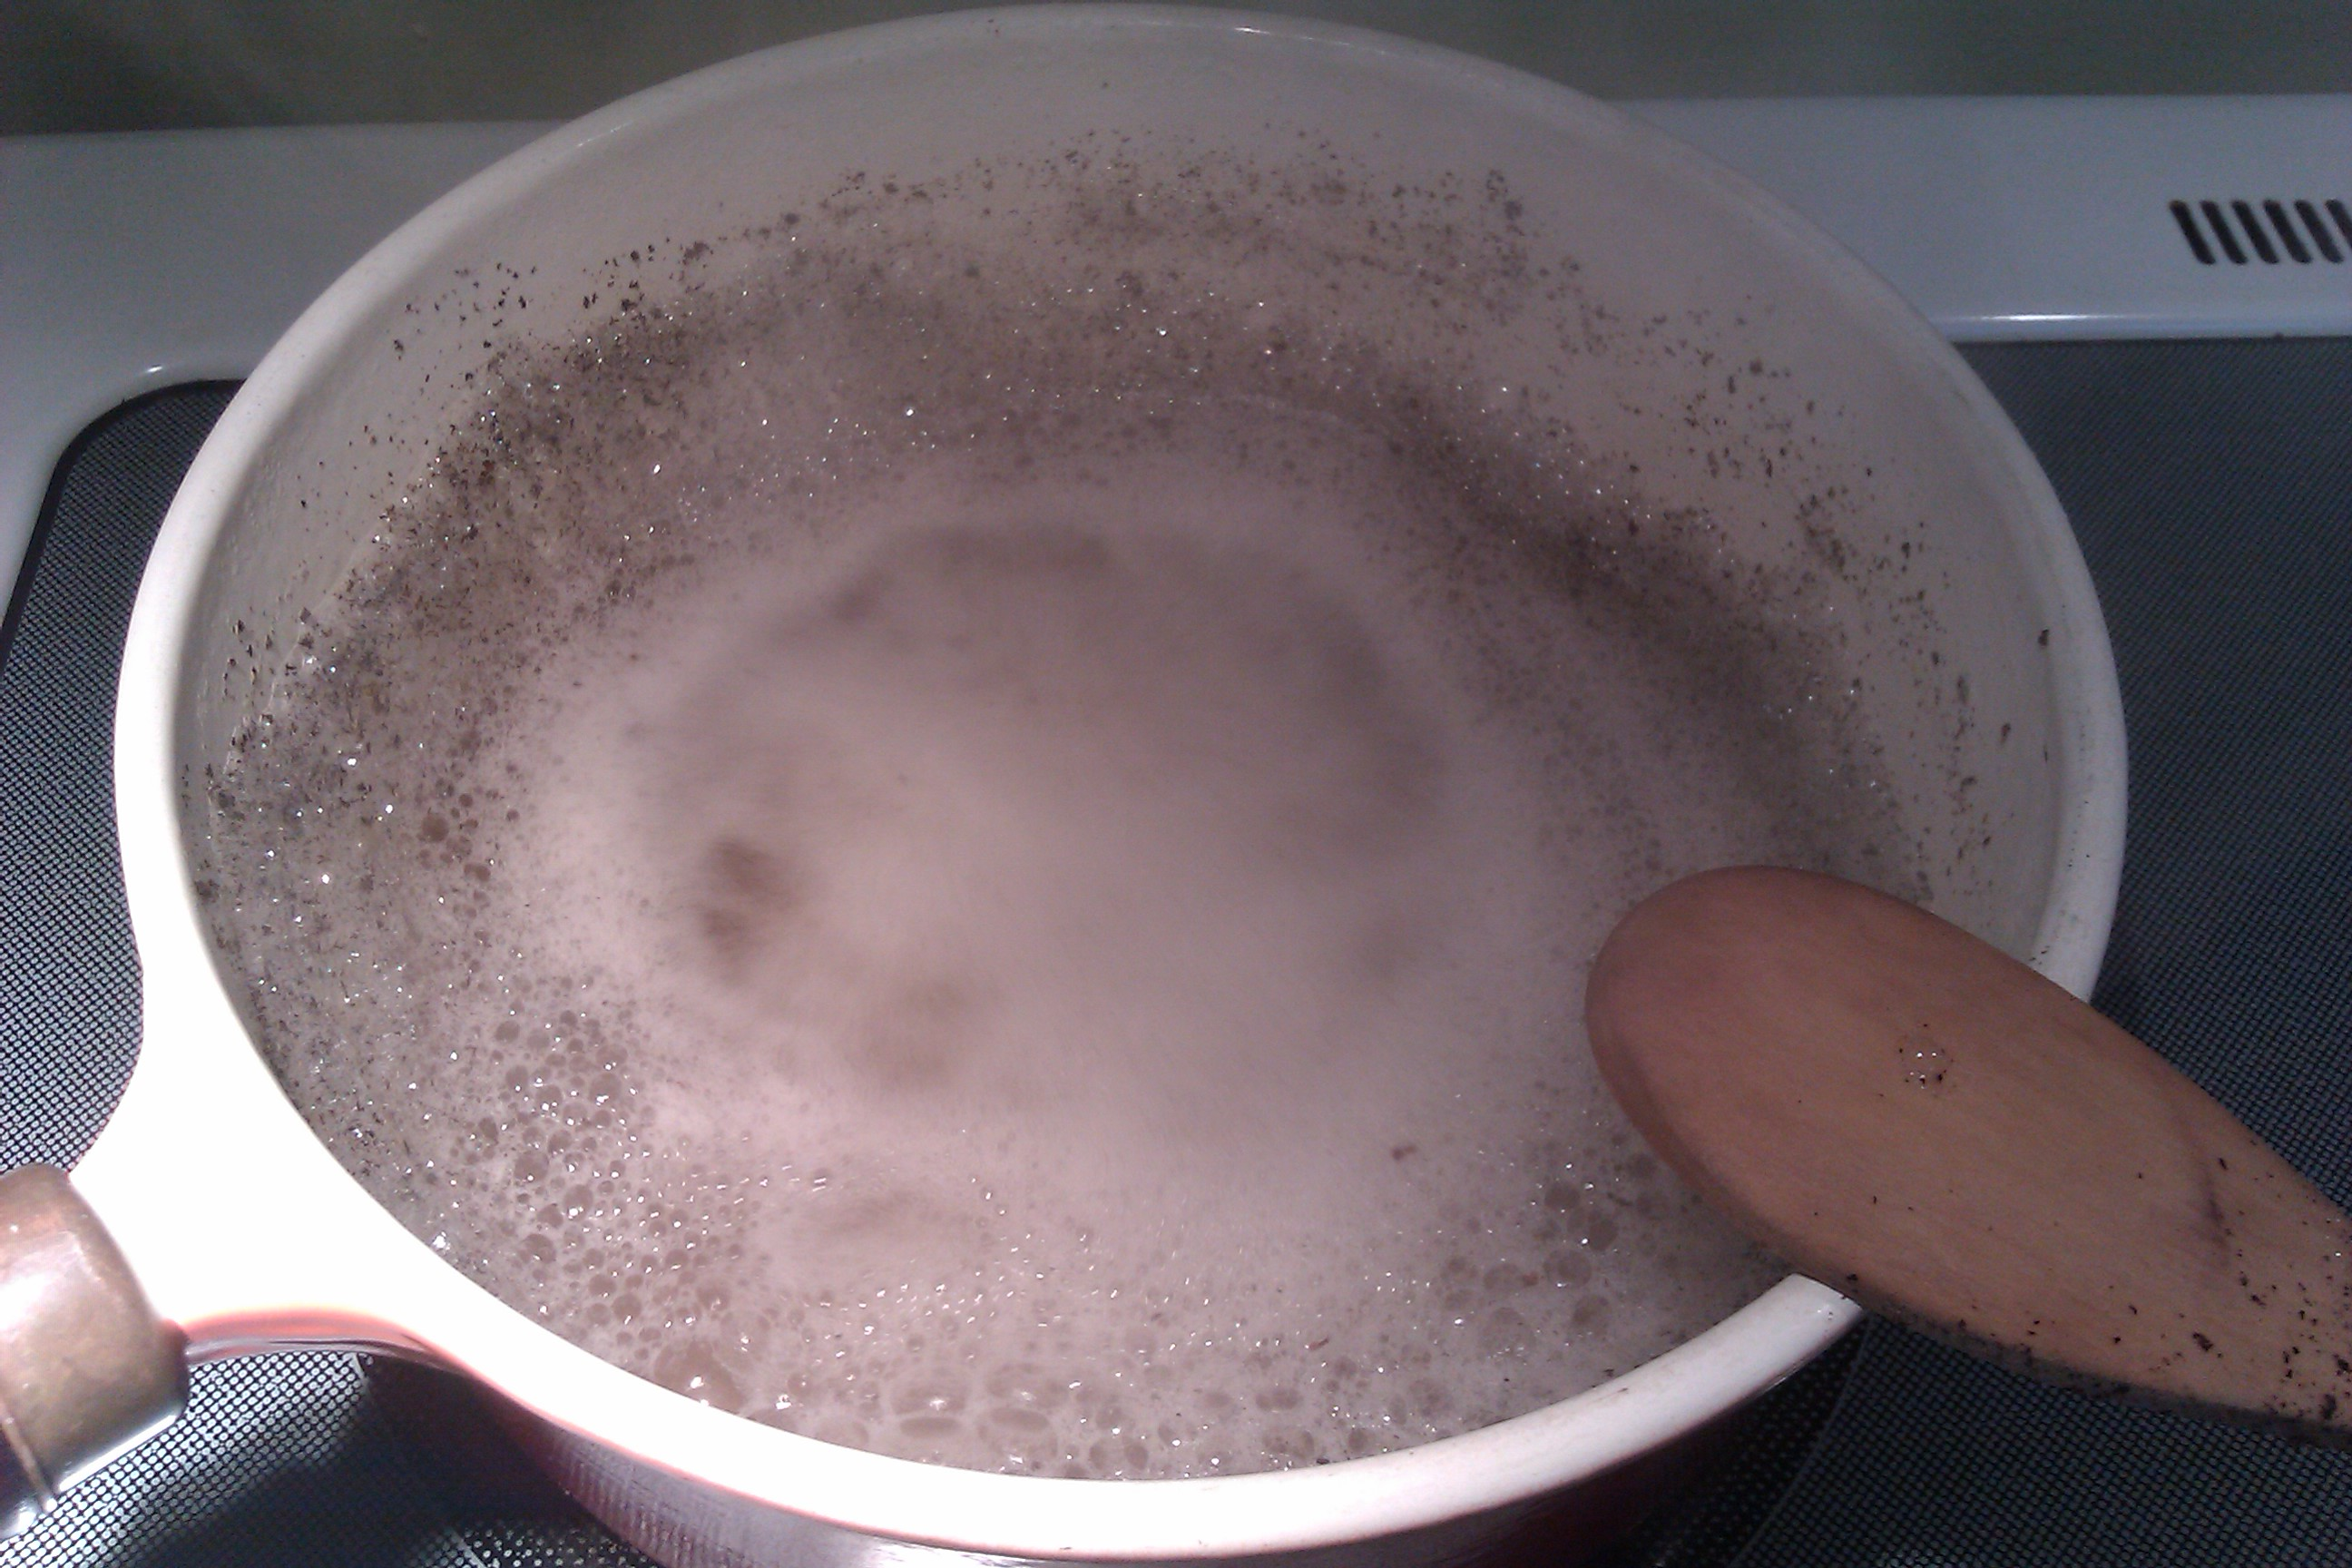 Pot boiling with baking soda and water